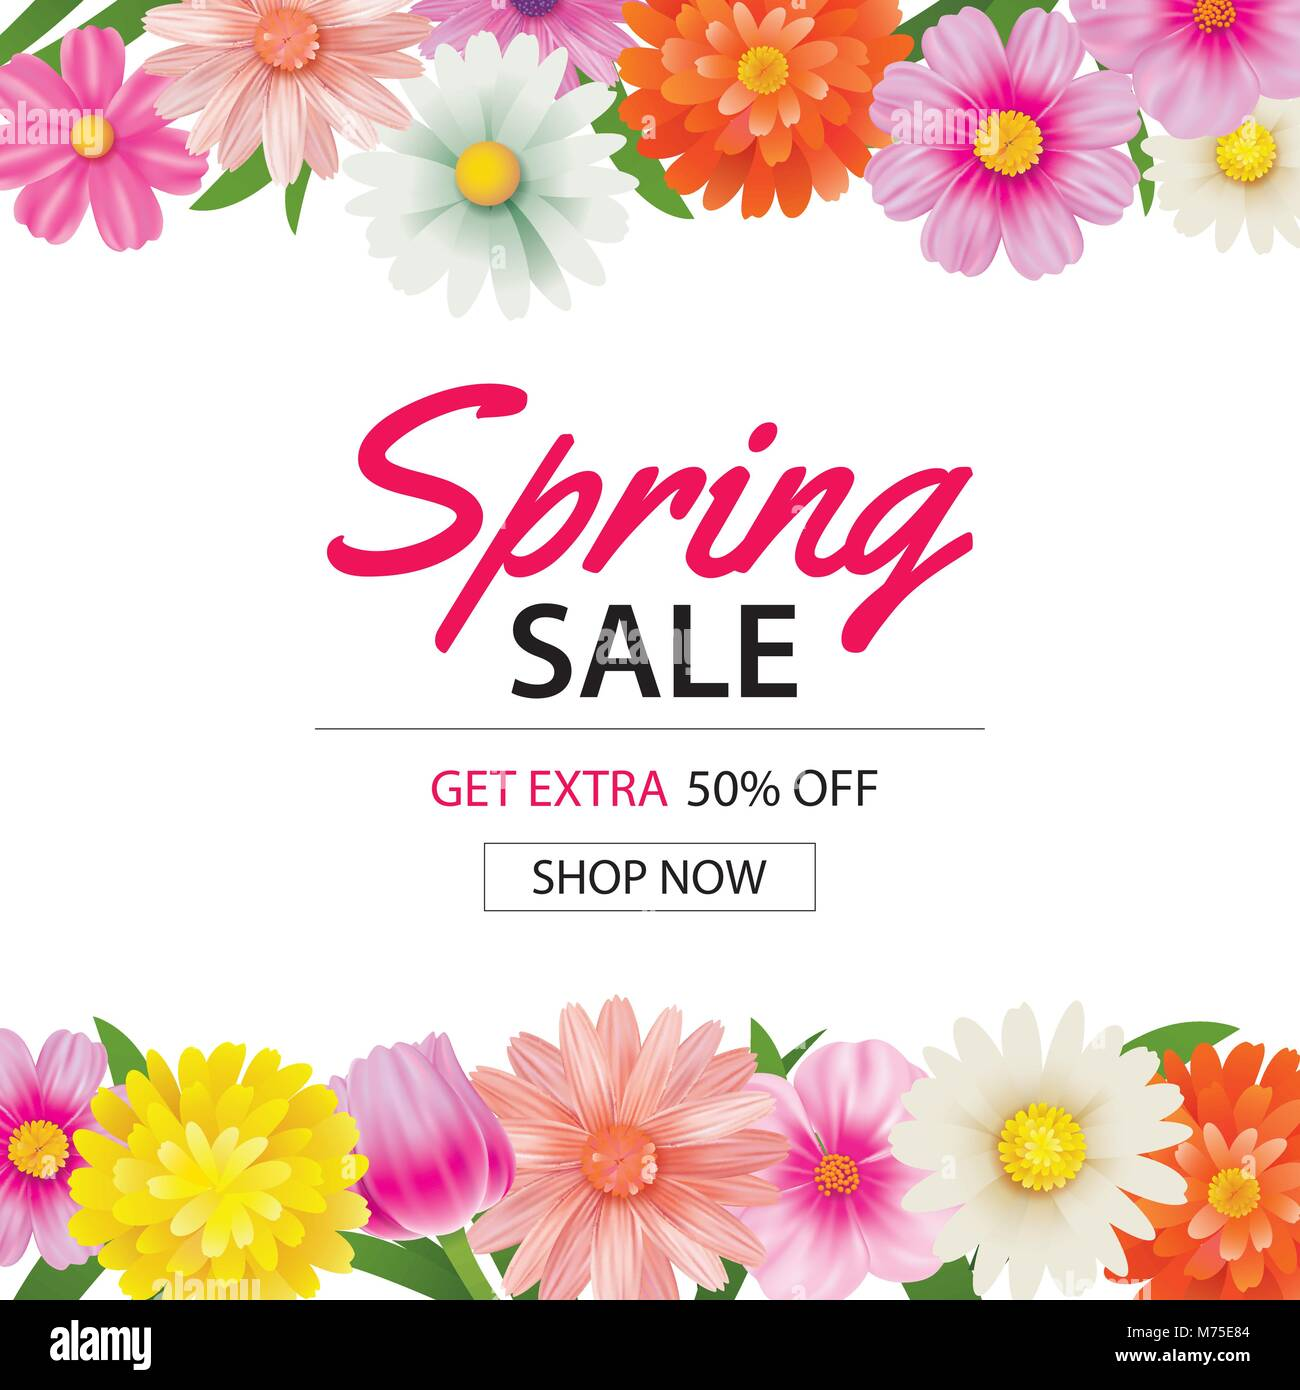 spring sale poster template with colorful flower background can be